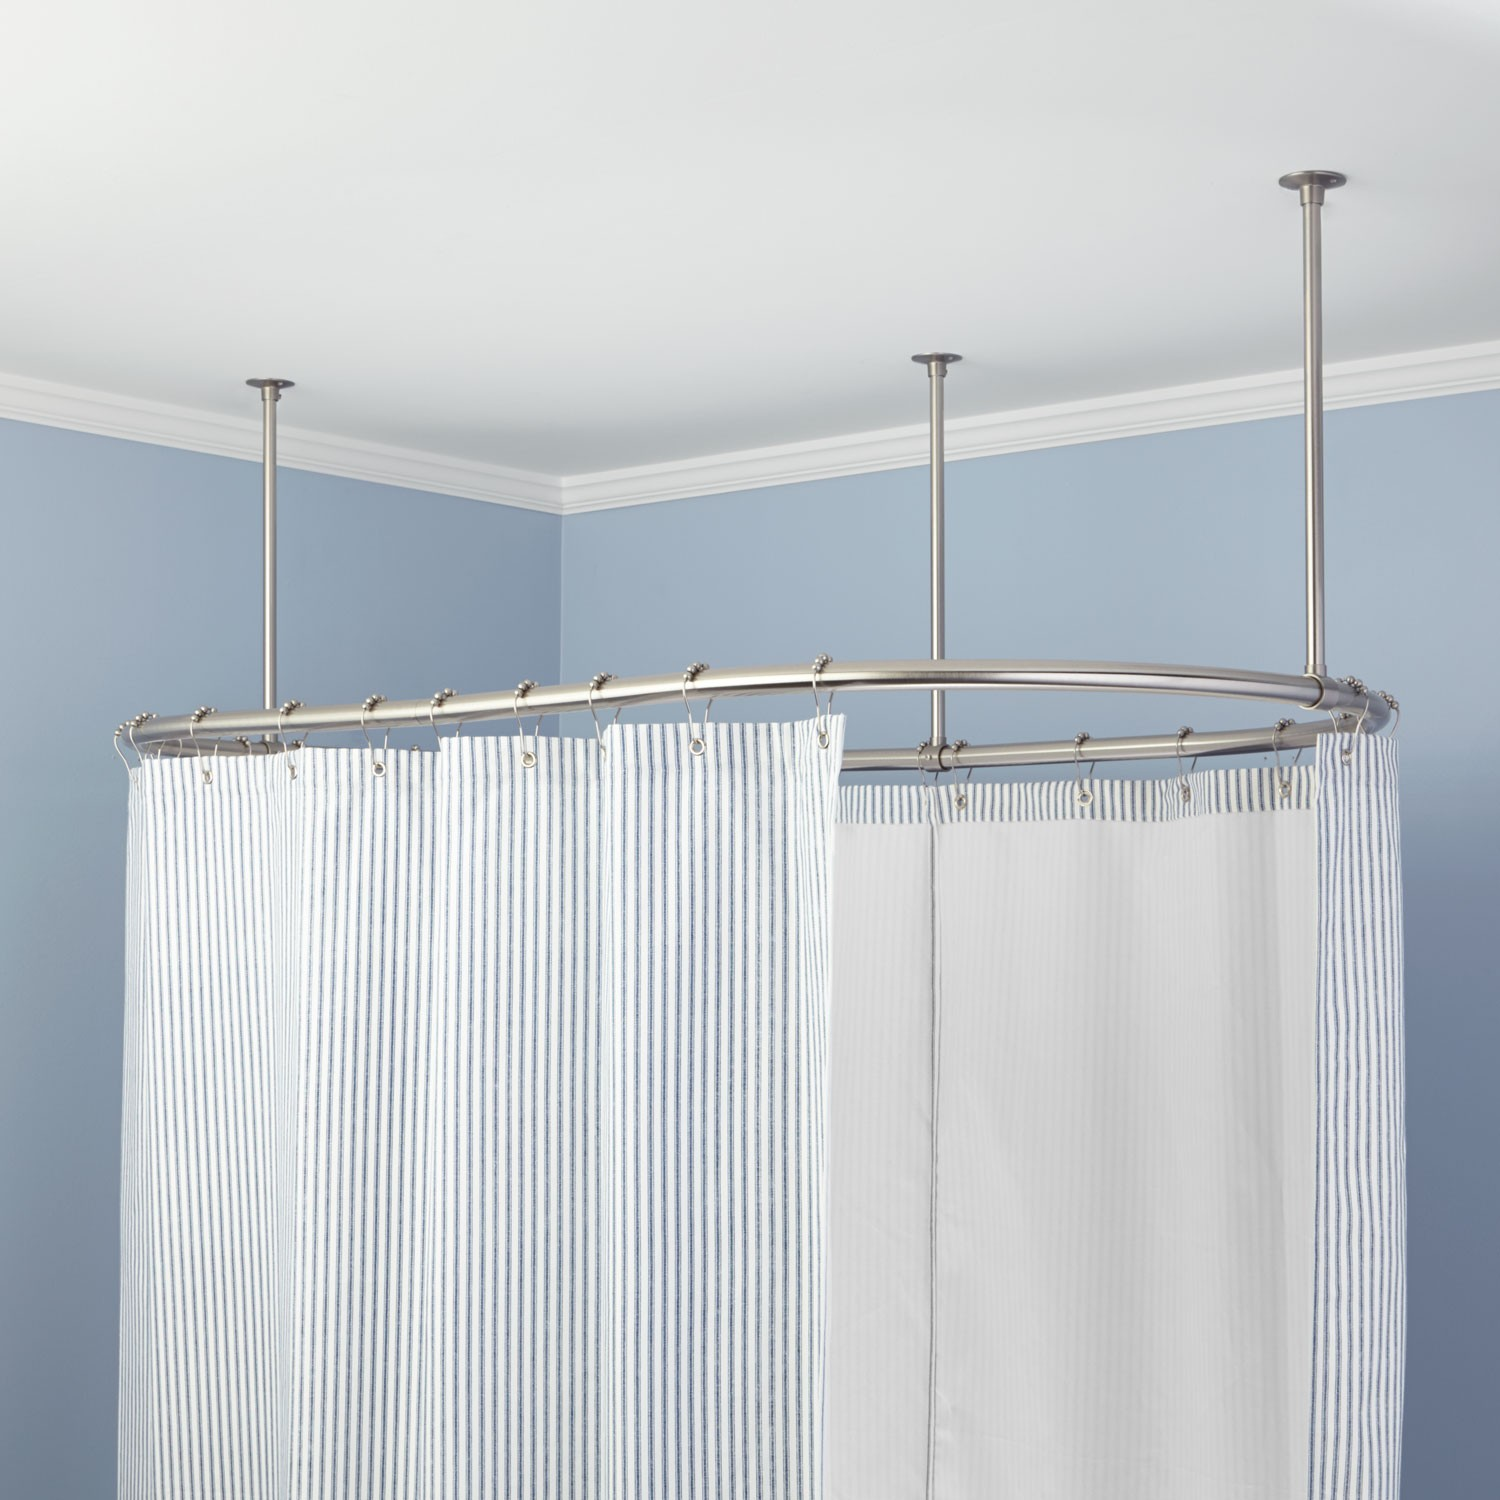 Diy Clawfoot Tub Shower Curtain Rod | Clawfoot Tub Shower Curtain | Shower Rod for Freestanding Tub